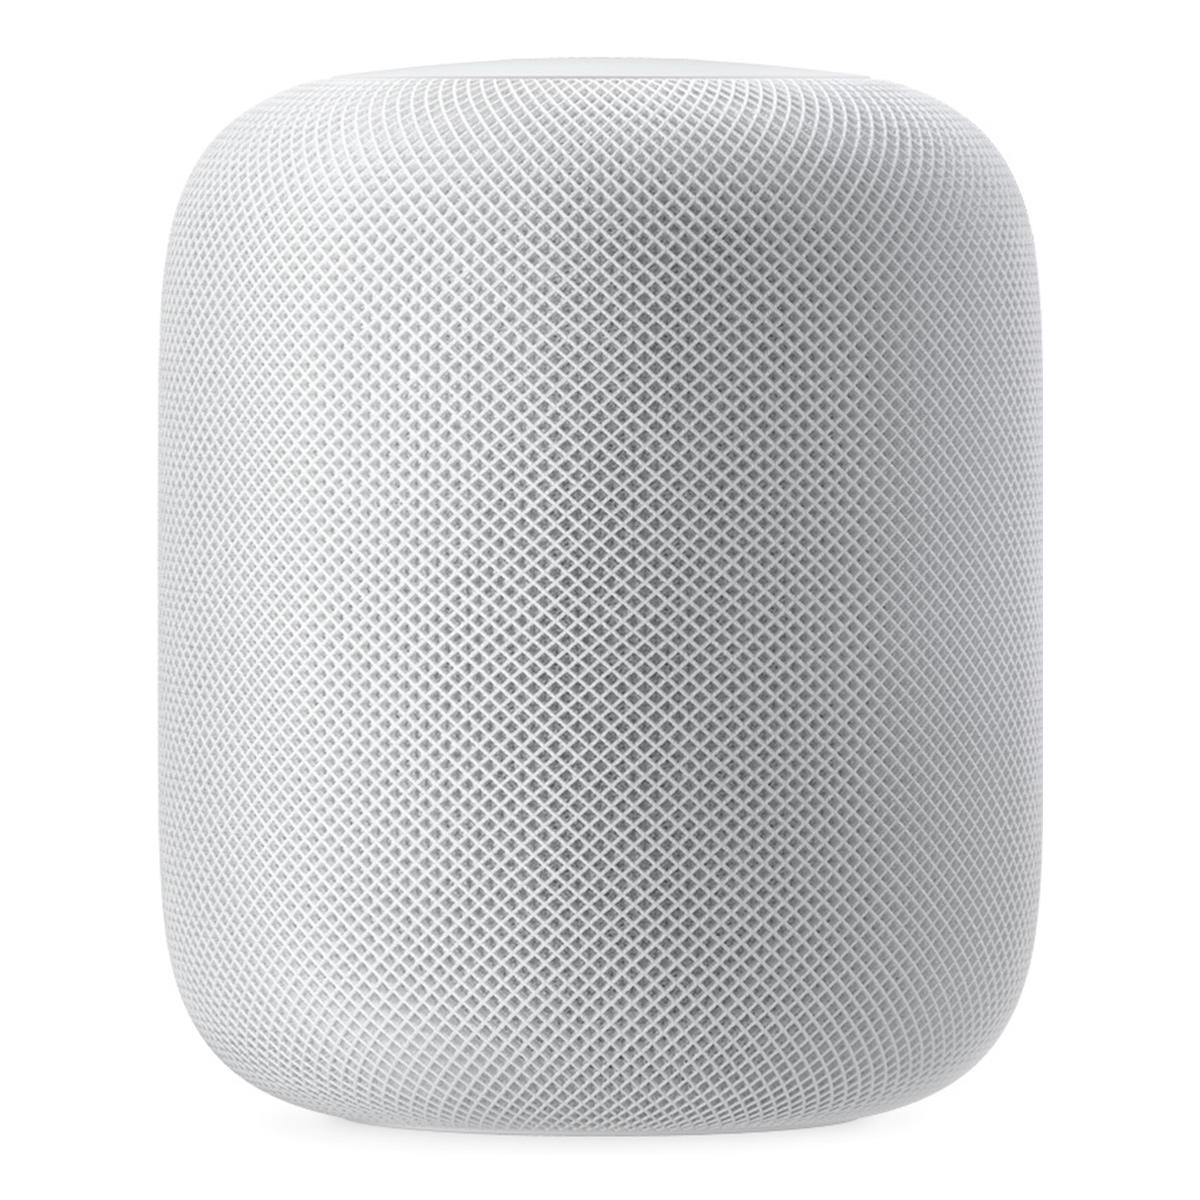 Apple HomePod Altavoz Inalámbrico Blanco